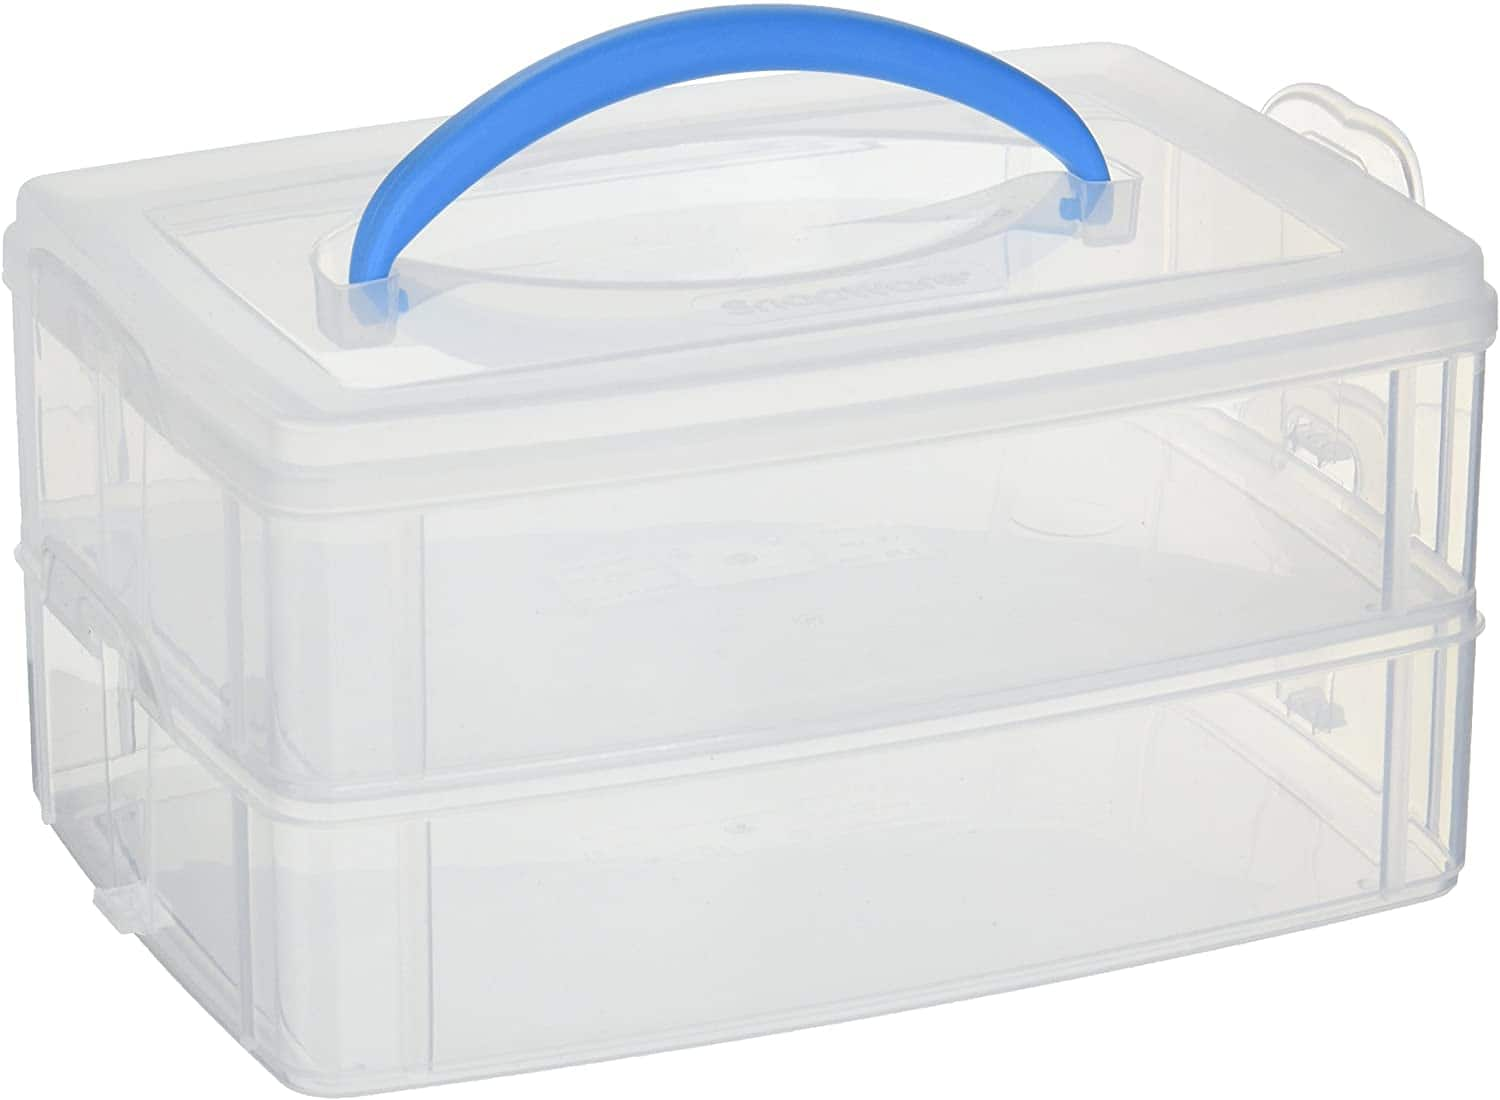 "Snapware Snap 'N Stack Portable Organizer (9.8"" x 6.6"" x 2.5"") $5.45 + Free Shipping w/ Prime or $25+"